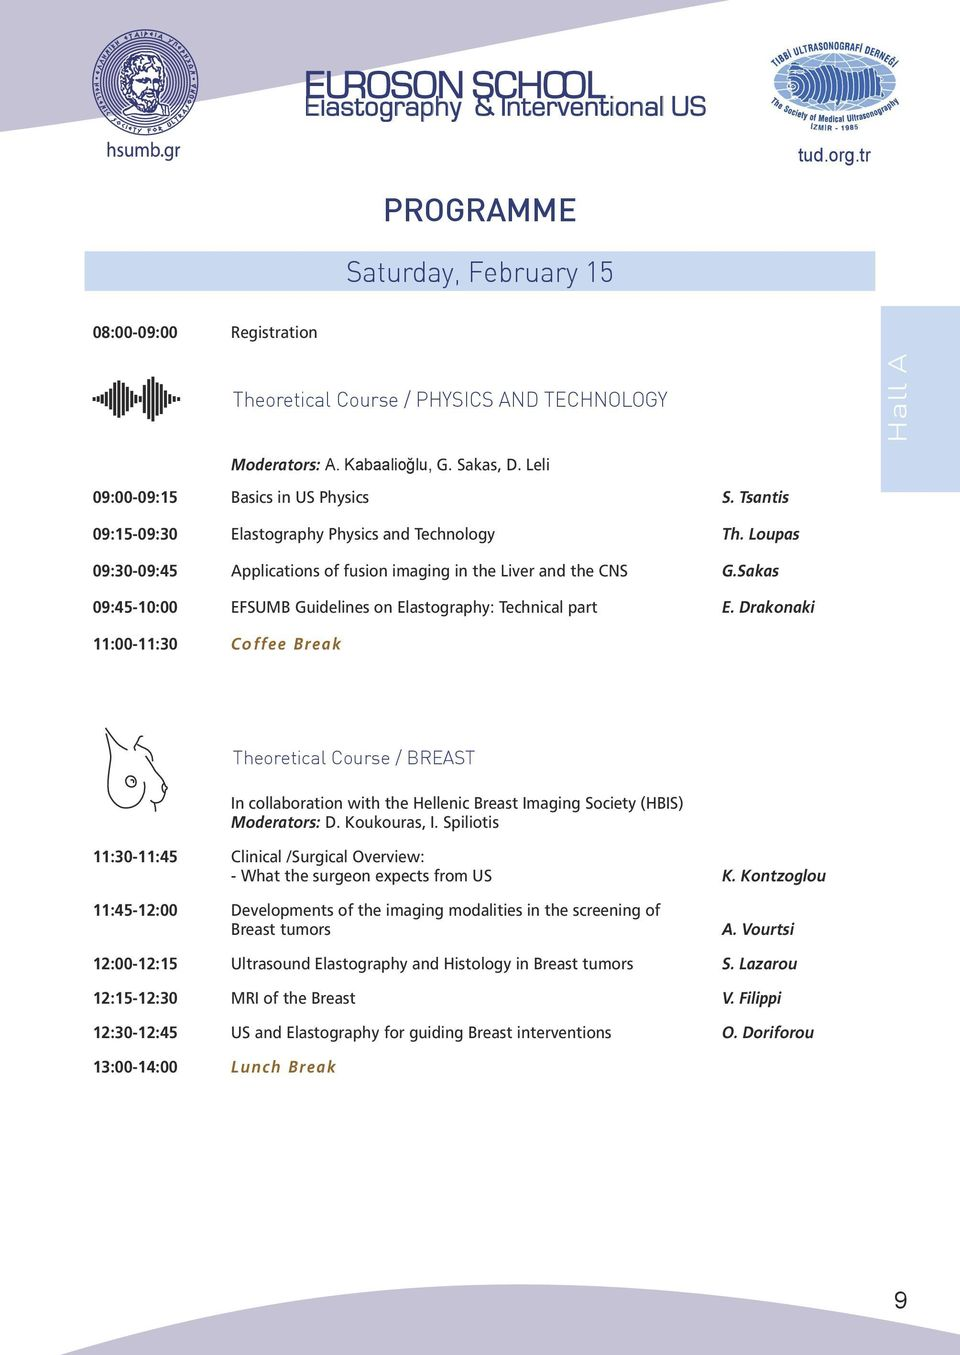 Sakas 09:45-10:00 EFSUMB Guidelines on Elastography: Technical part E.